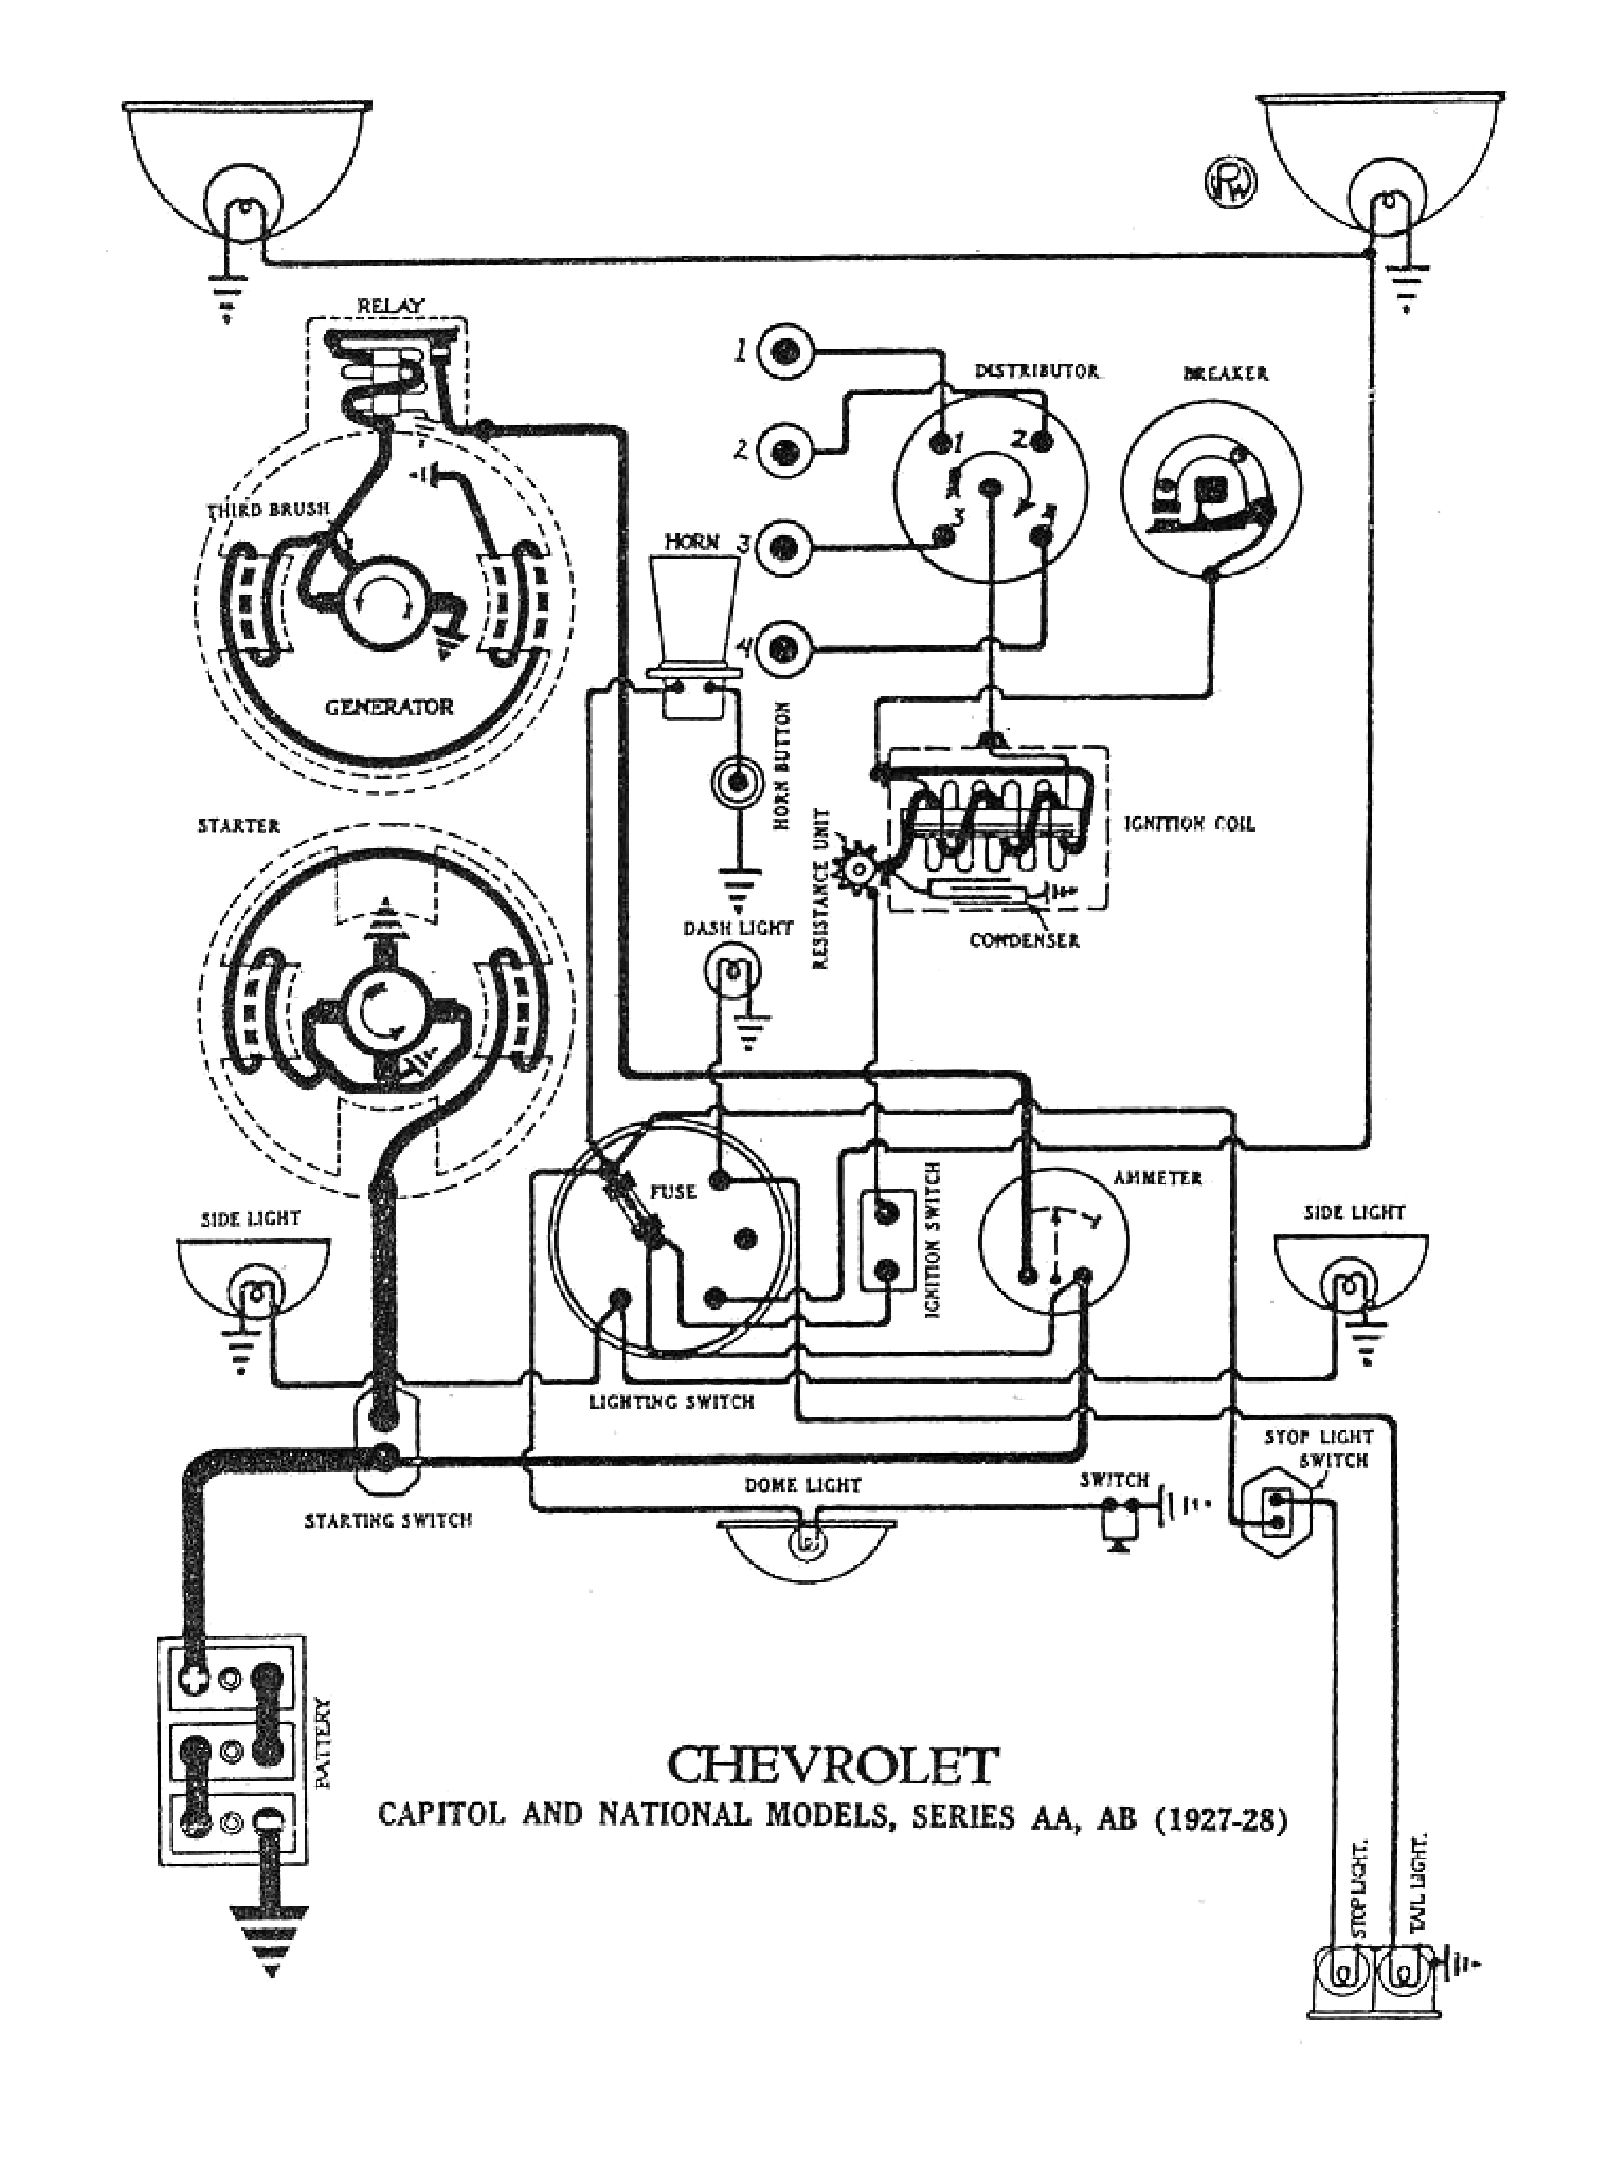 2728wiring chevy wiring diagrams 7mgte wiring harness diagram at panicattacktreatment.co